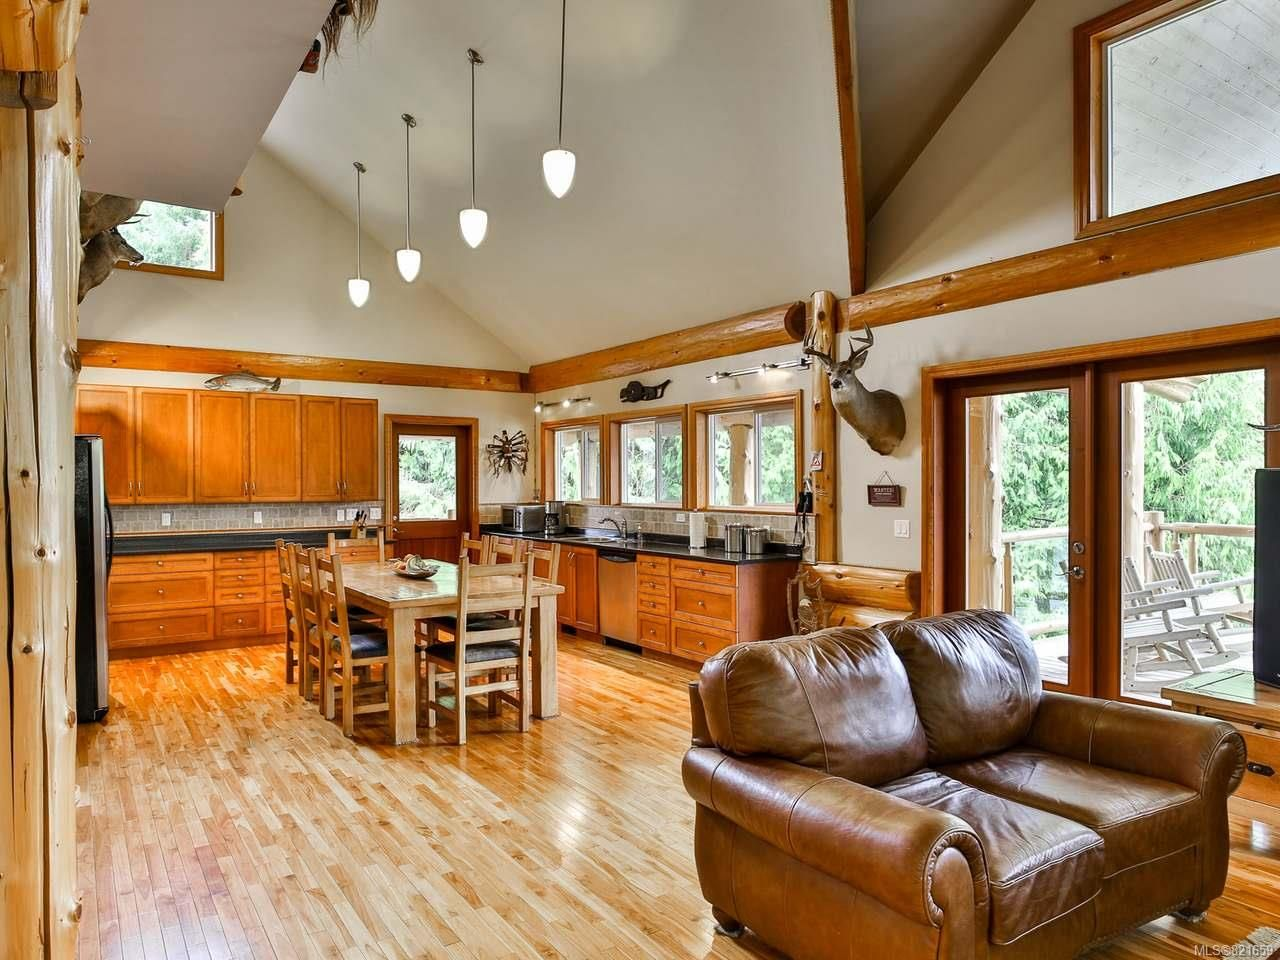 Photo 5: Photos: 1049 Helen Rd in UCLUELET: PA Ucluelet House for sale (Port Alberni)  : MLS®# 821659